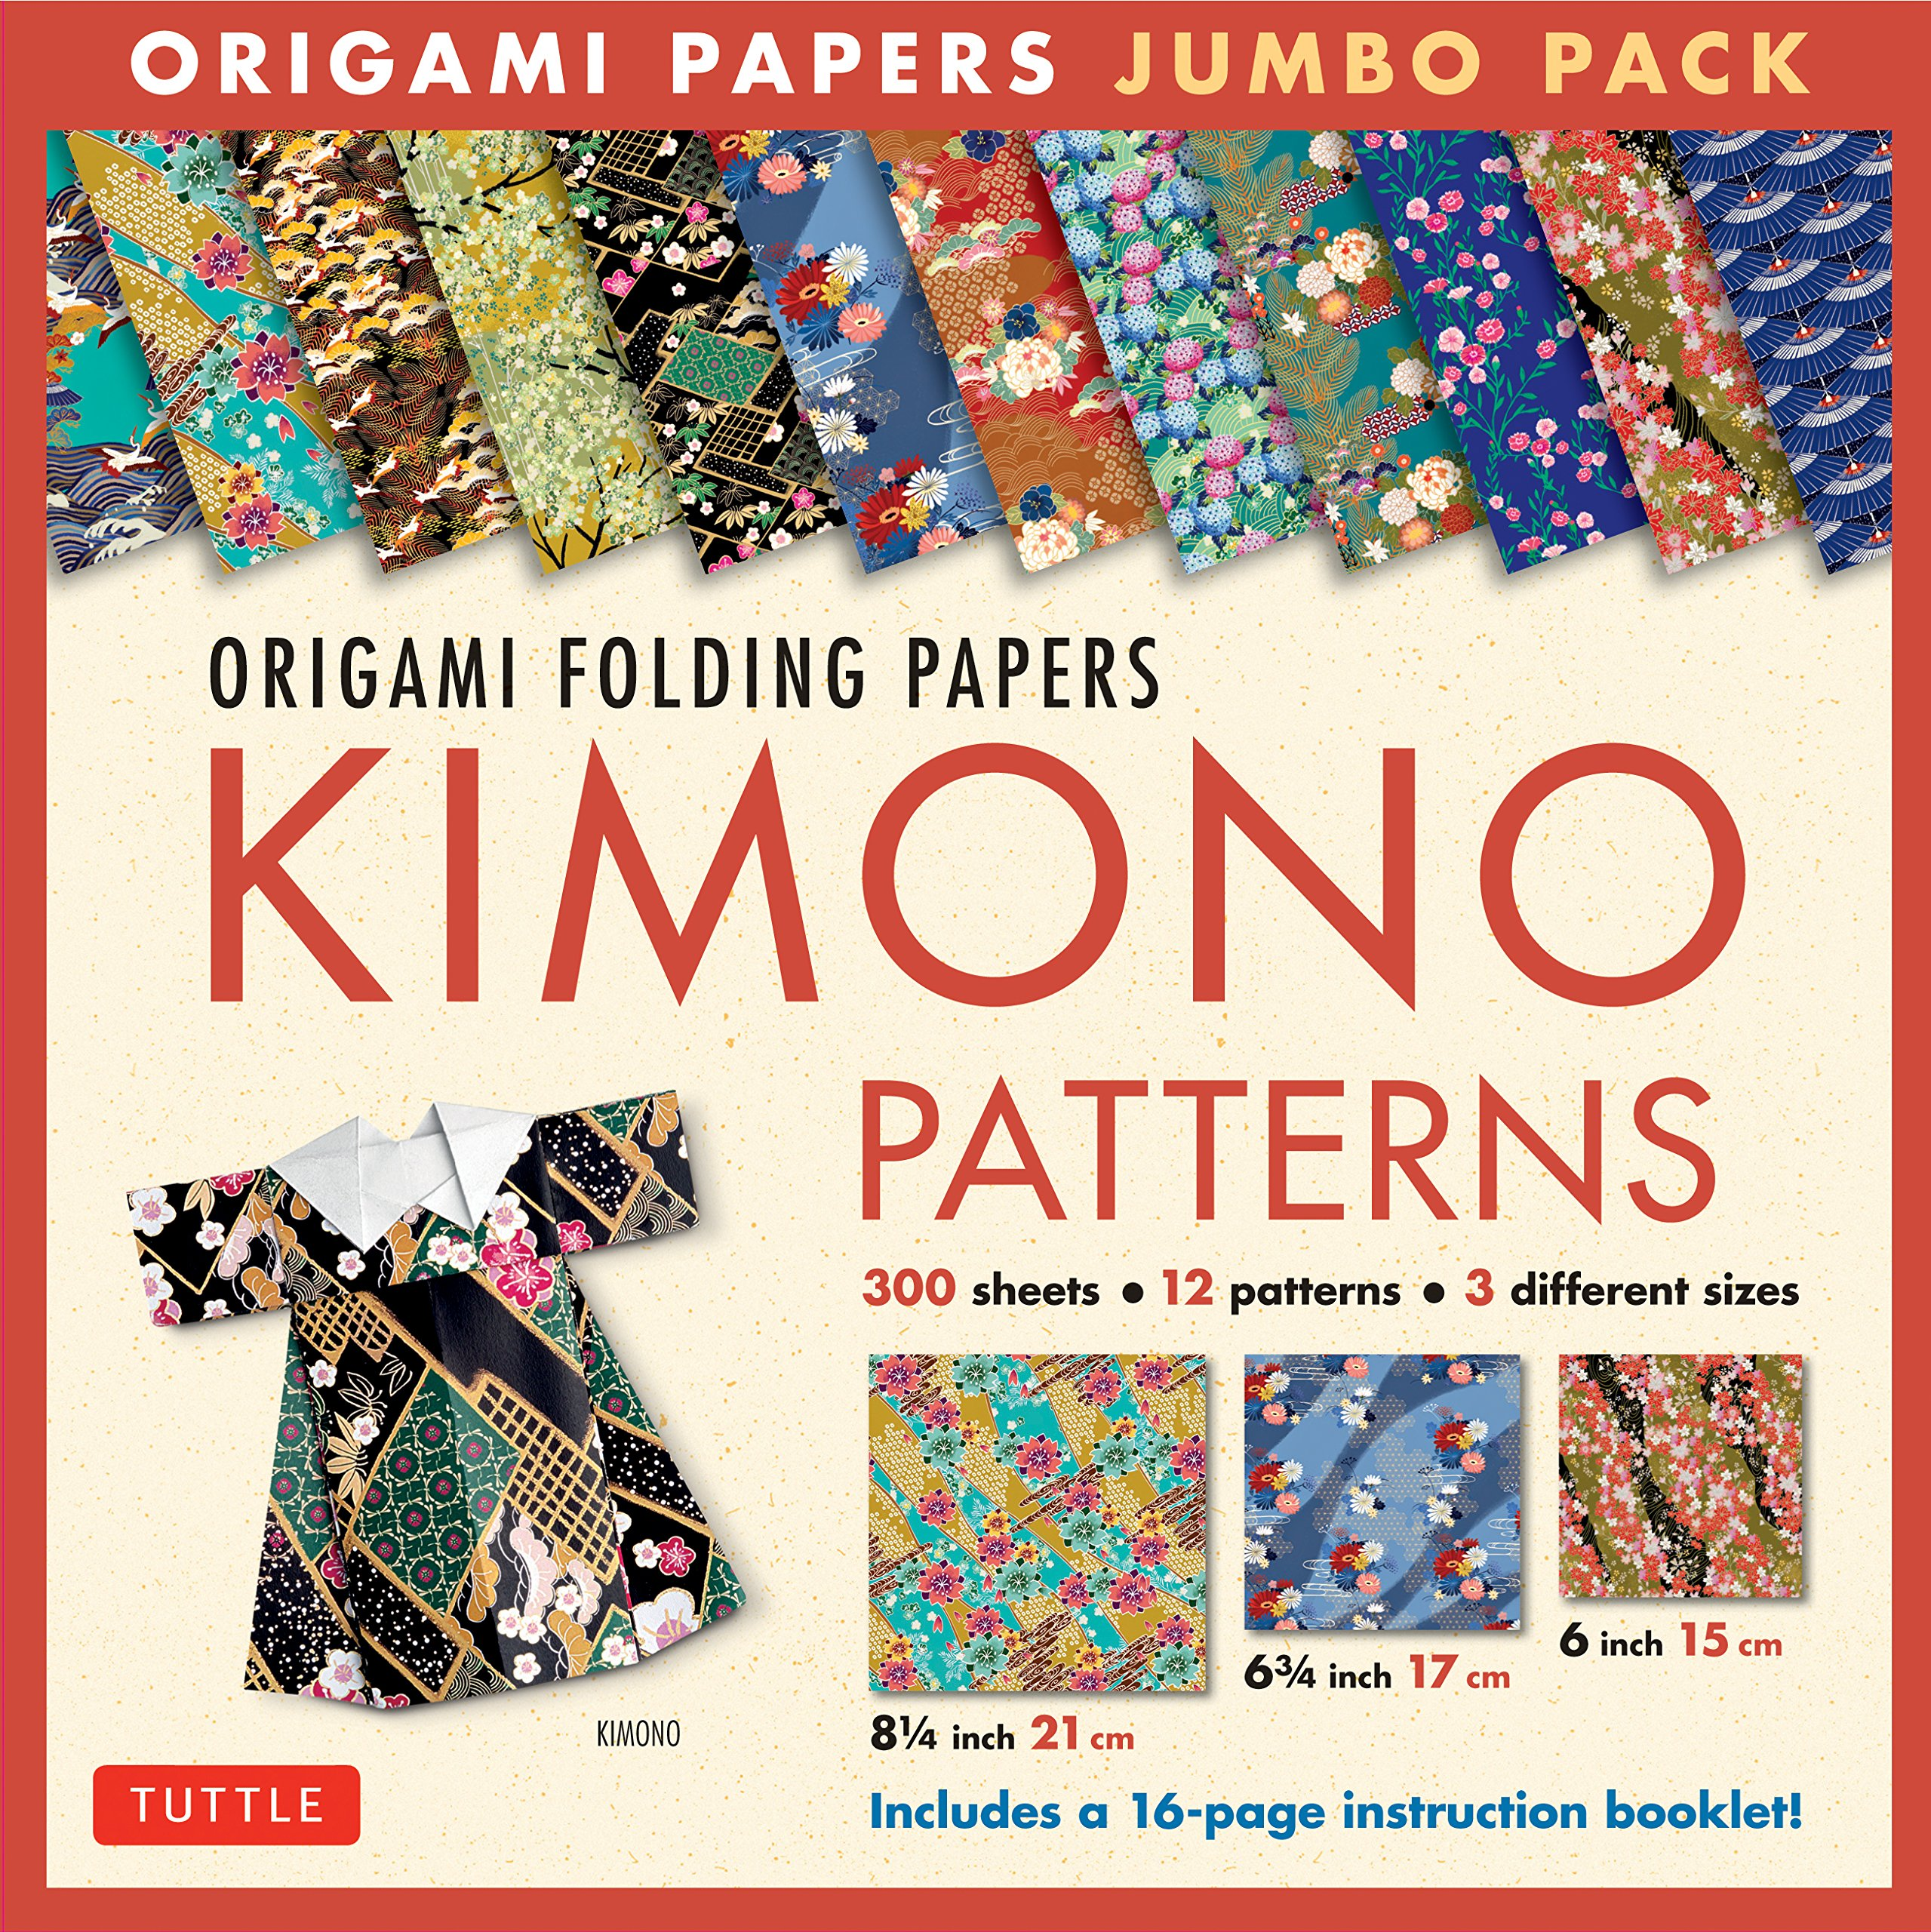 Origami Folding Papers Jumbo Pack: Kimono Patterns: 300 High-Quality Origami Papers in 3 Sizes (6 inch; 6 3/4 inch and 8 1/4 inch) and a 16-page Instructional Origami Book Paperback – October 25, 2016 Tuttle Publishing 0804847282 ART / Prints Crafts & Hobb